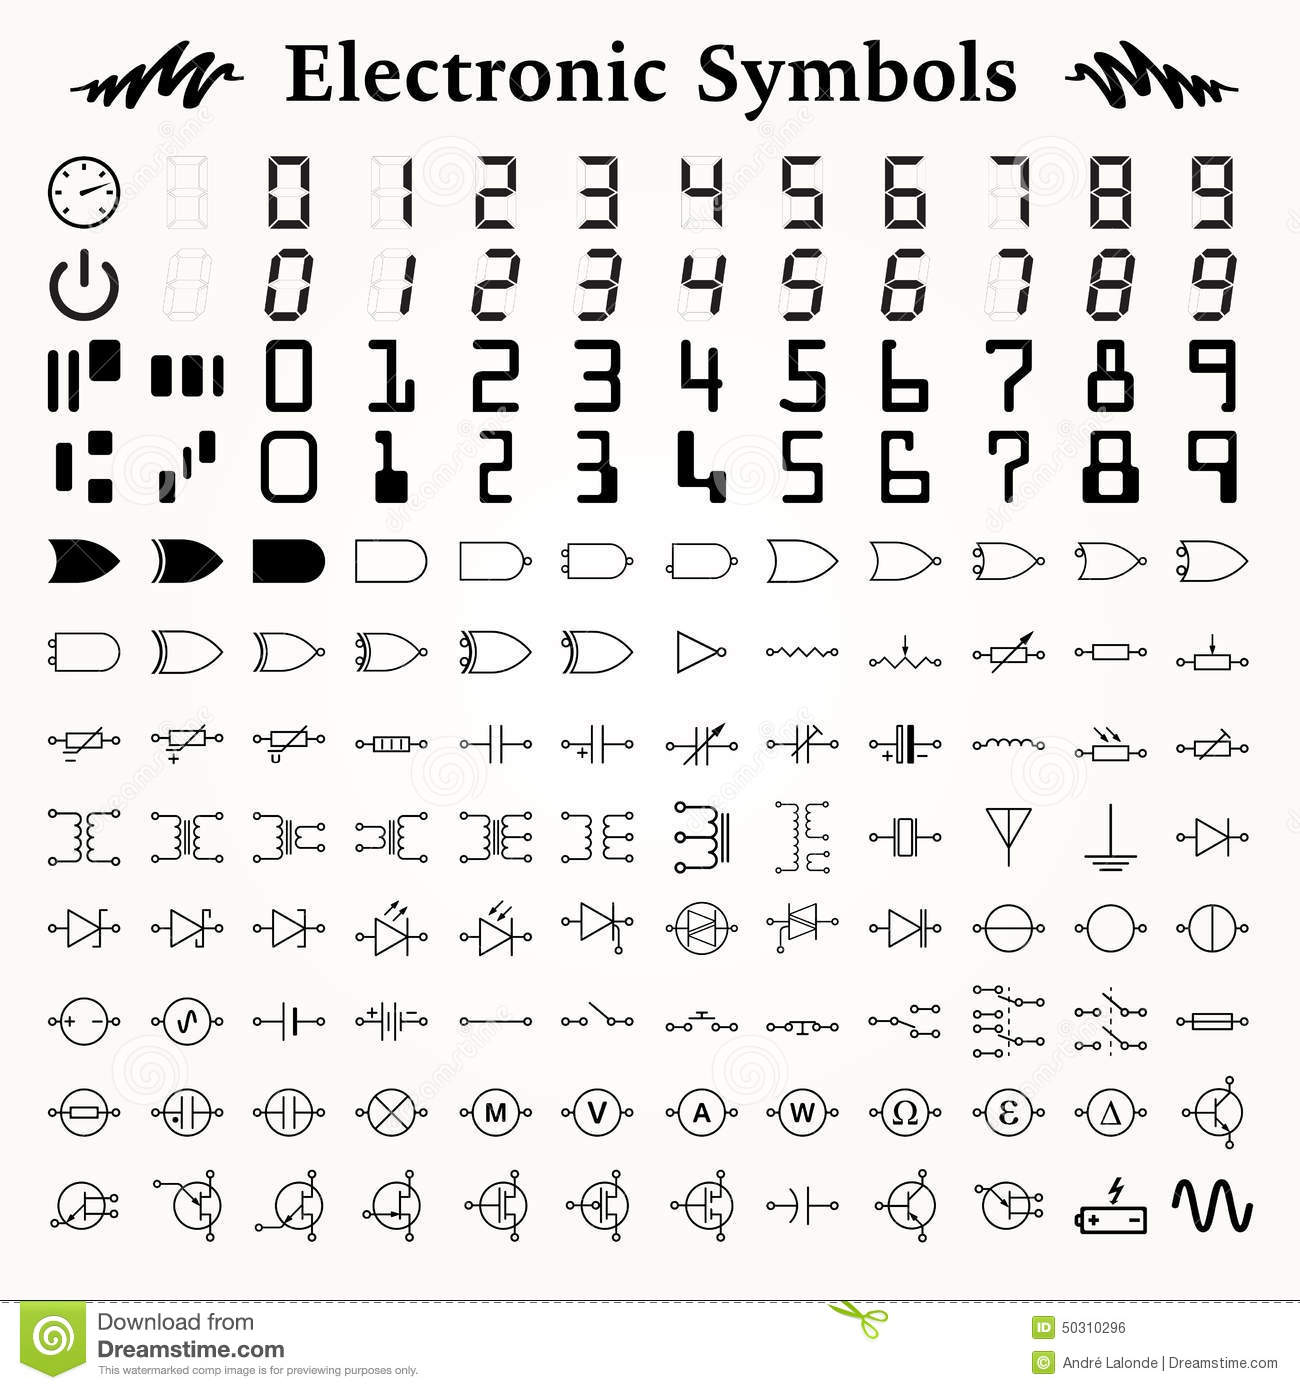 Electronic symbols stock vector illustration of diagram 50310296 electronic symbols buycottarizona